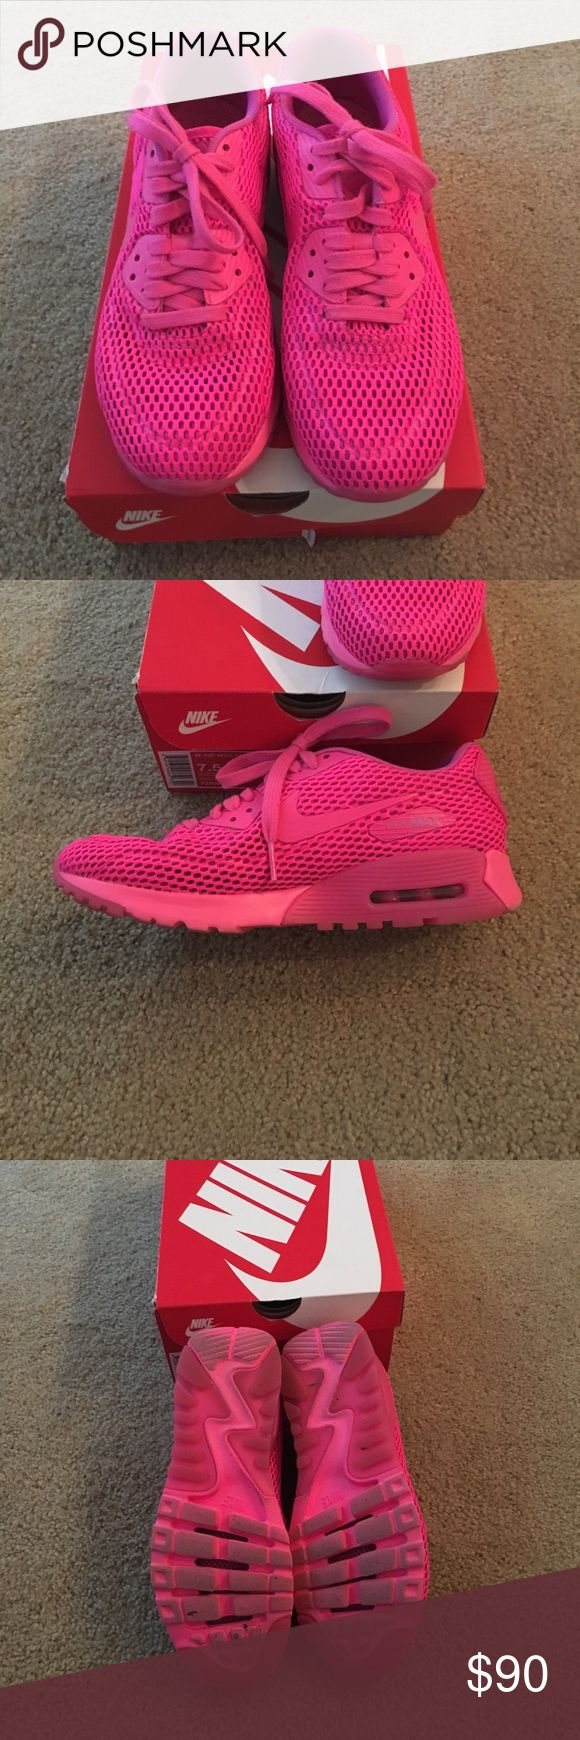 Bright pink Nike air max Gently worn bright pink Nike air max. Come with original box. Nike Shoes Sneakers